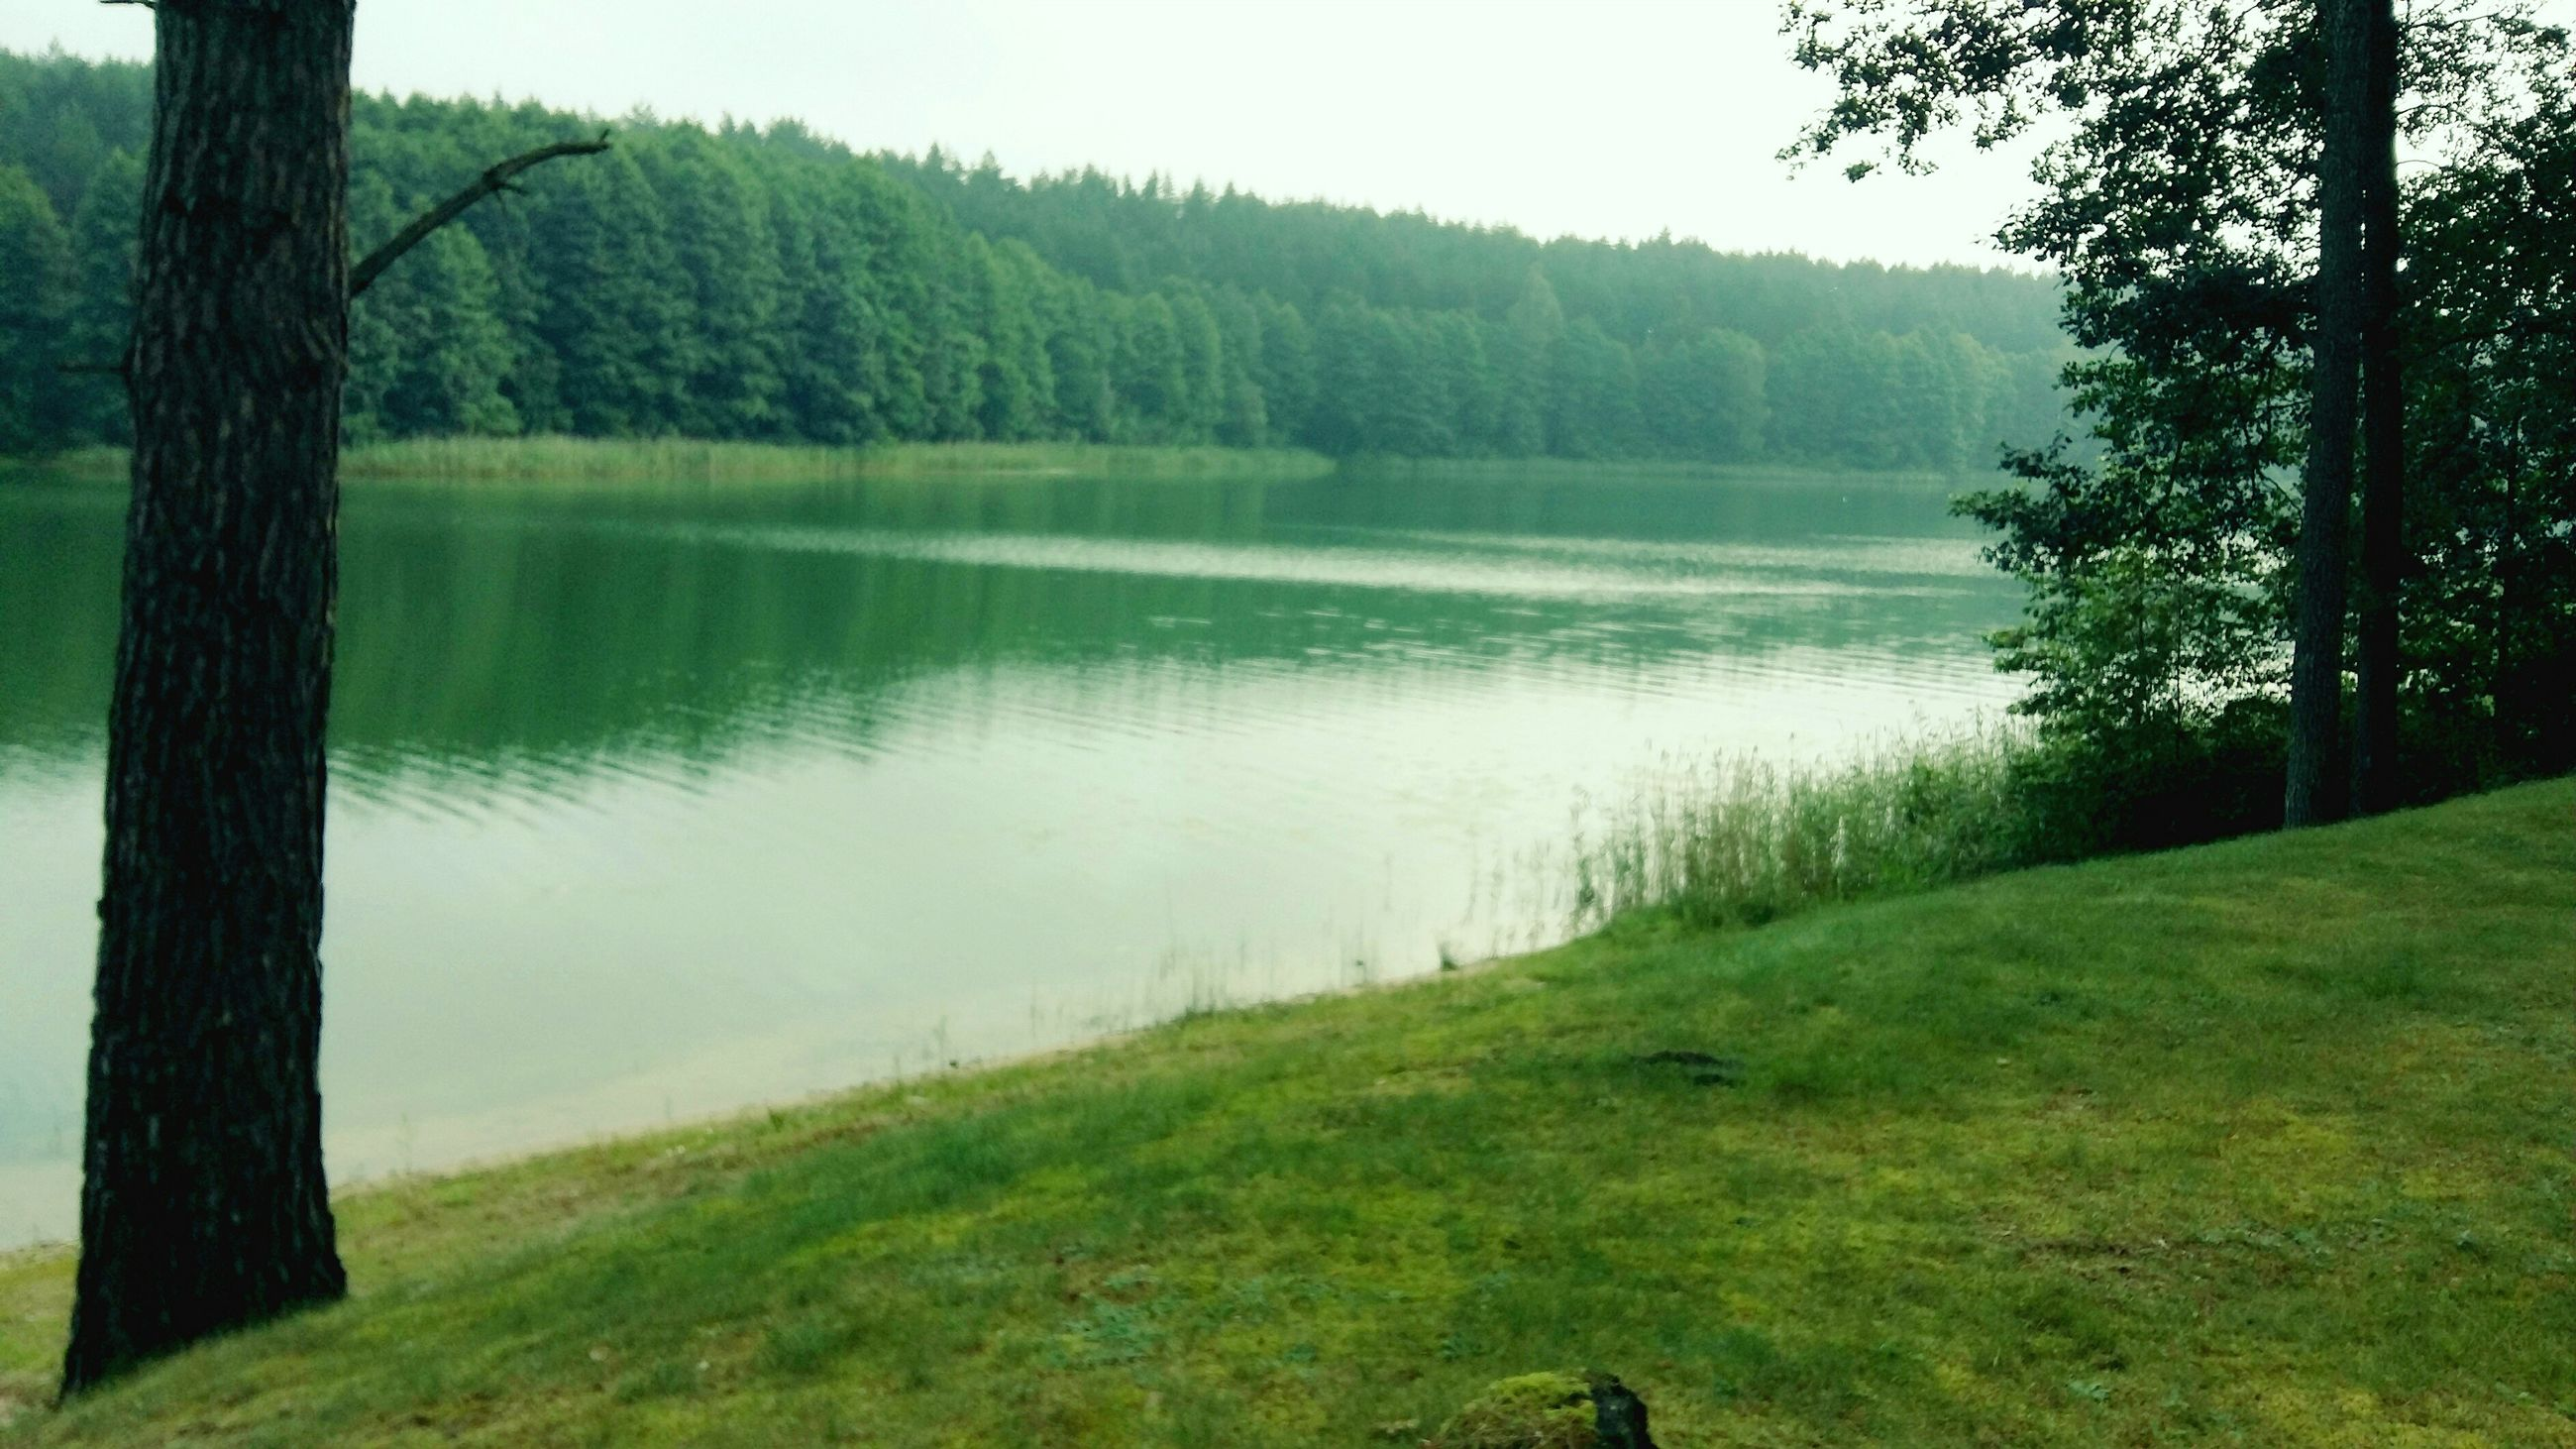 nature, tree, tranquility, water, growth, grass, beauty in nature, tranquil scene, scenics, no people, lake, day, outdoors, landscape, lakeside